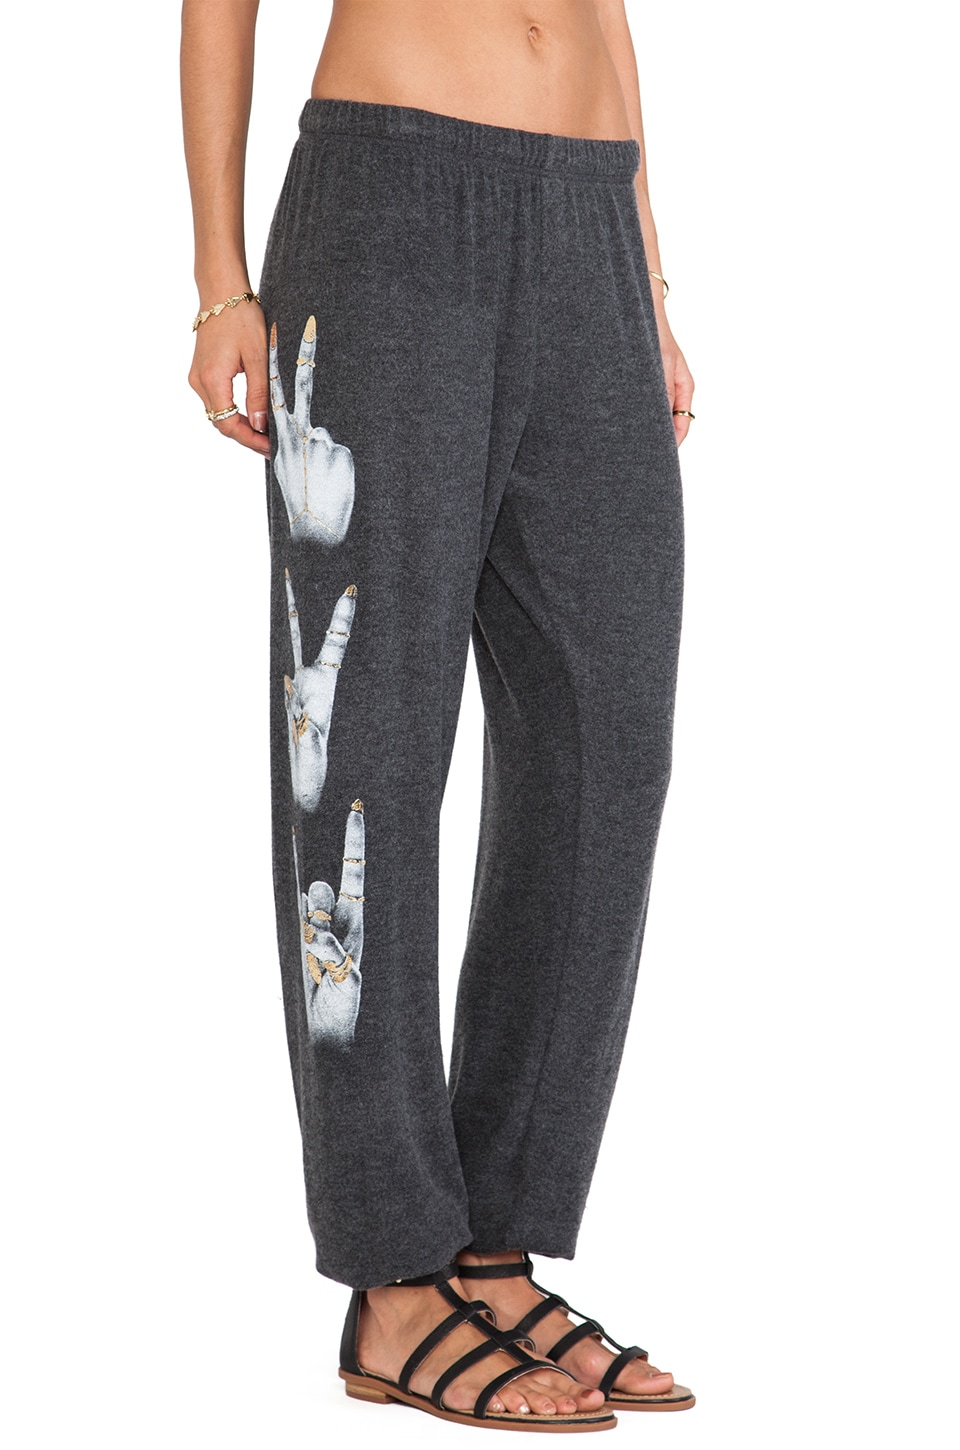 Lauren Moshi Tanzy Foil 3 Hand Signs Pant in Black